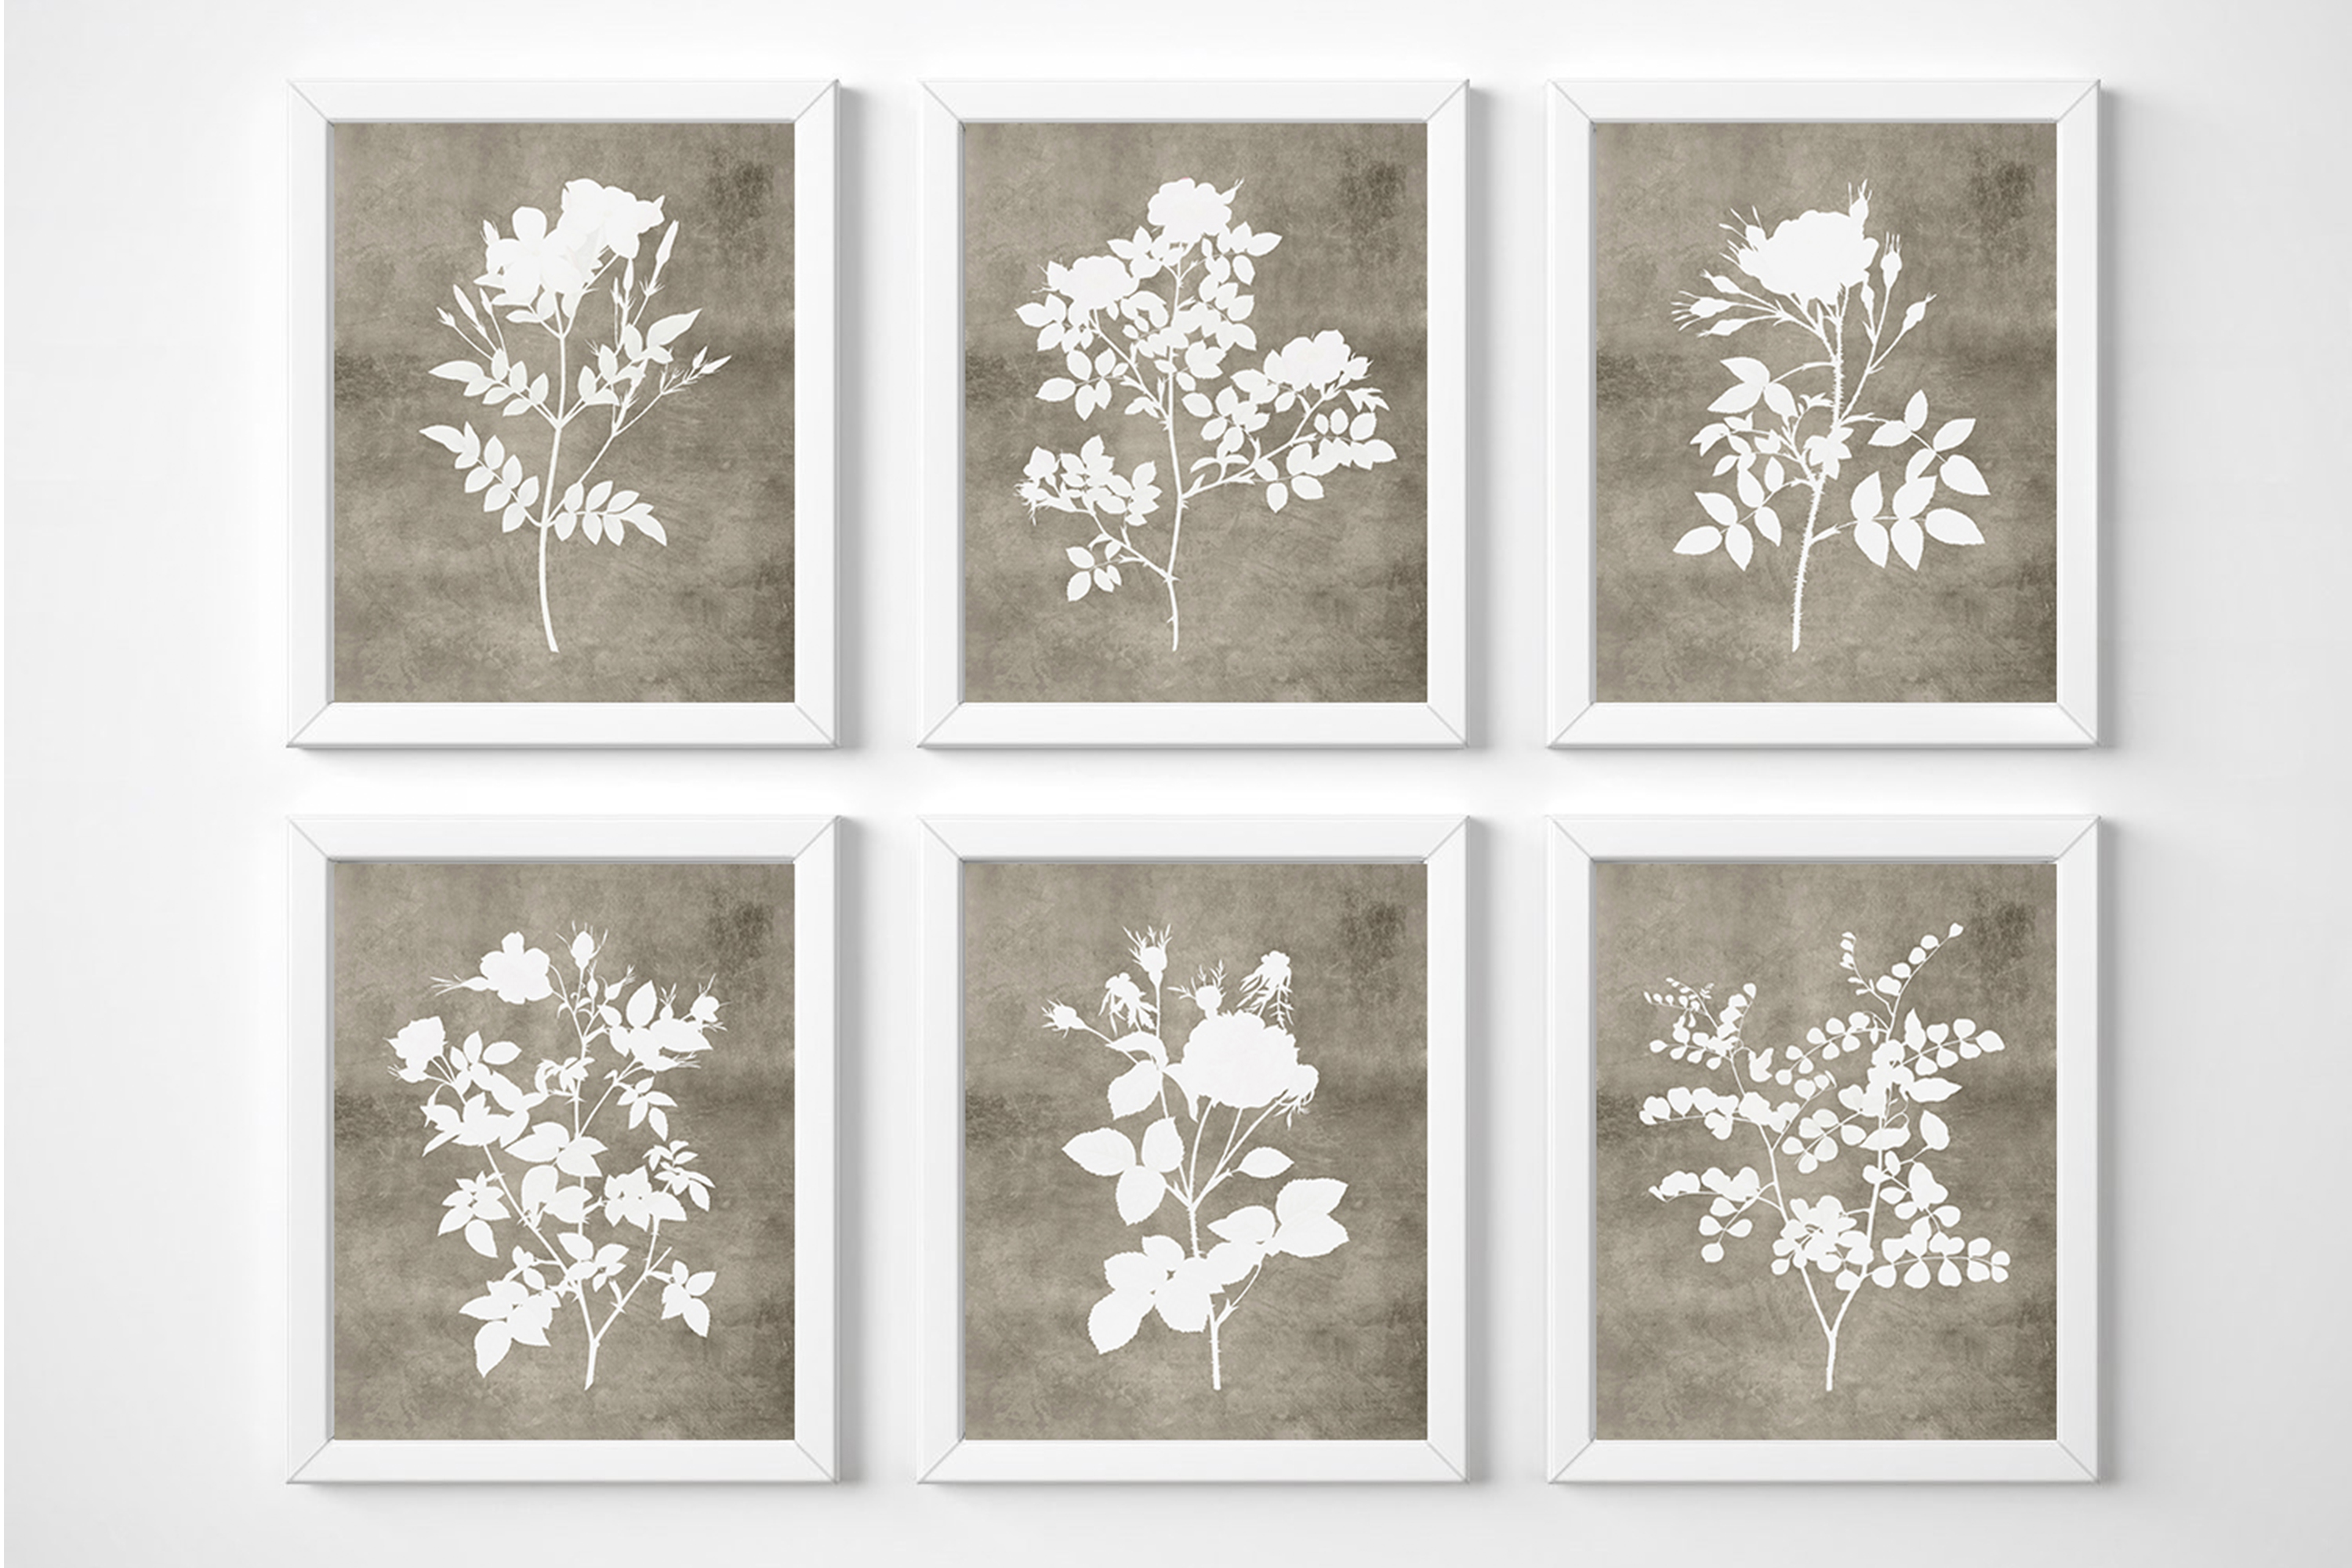 Farmhouse Floral Print, Rustic Flower Wall Decor, Botanical example image 1